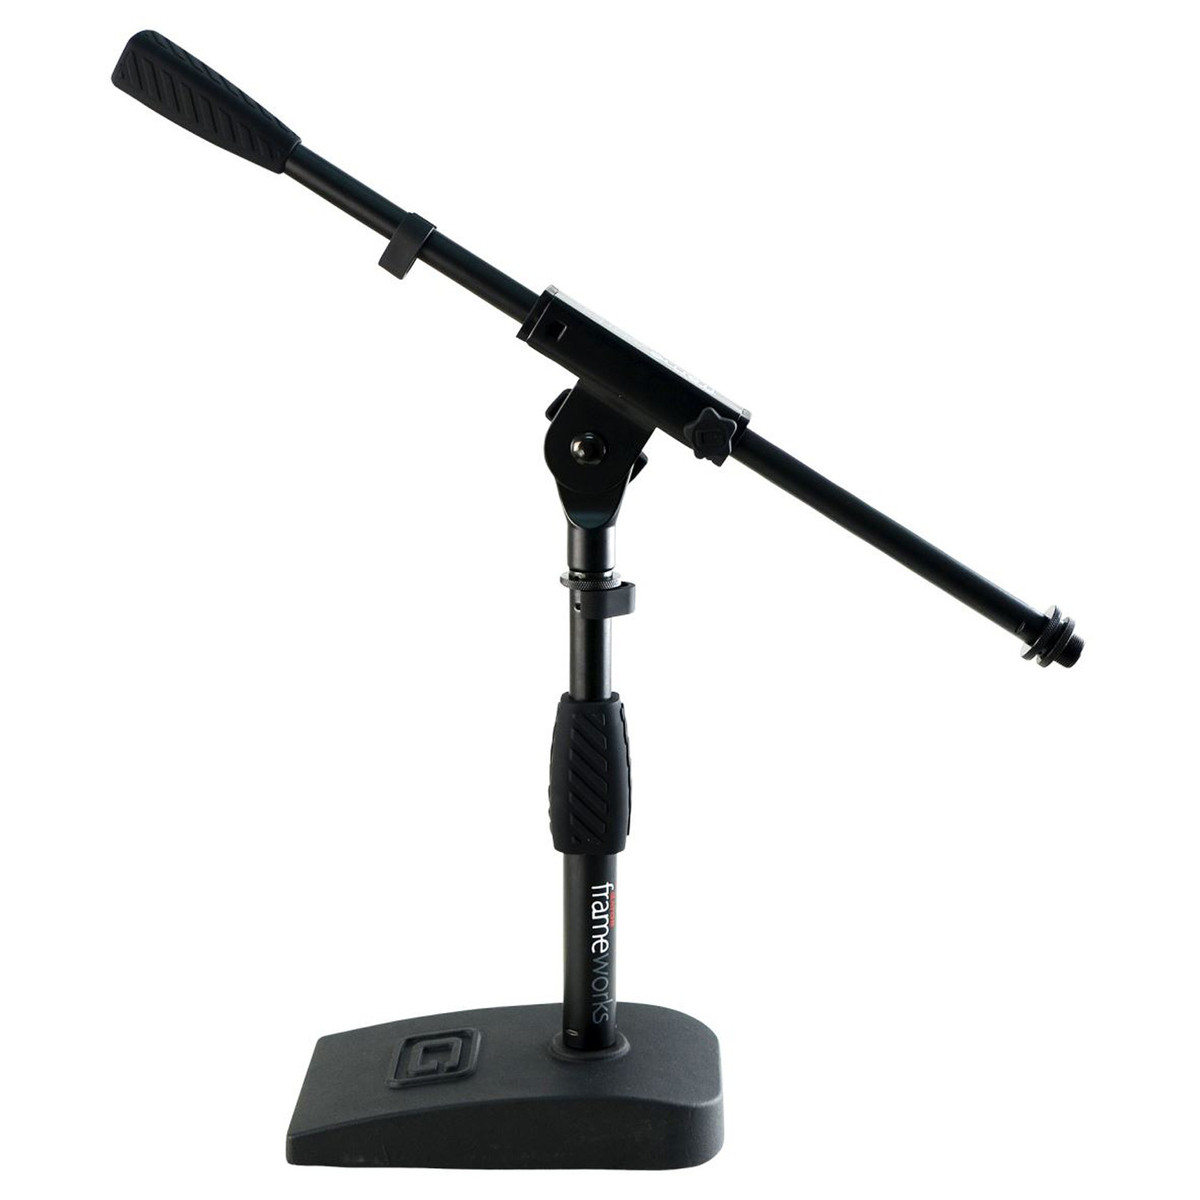 Image of Frameworks GFW 0821 Compact Base Bass Drum and Amp Mic Stand